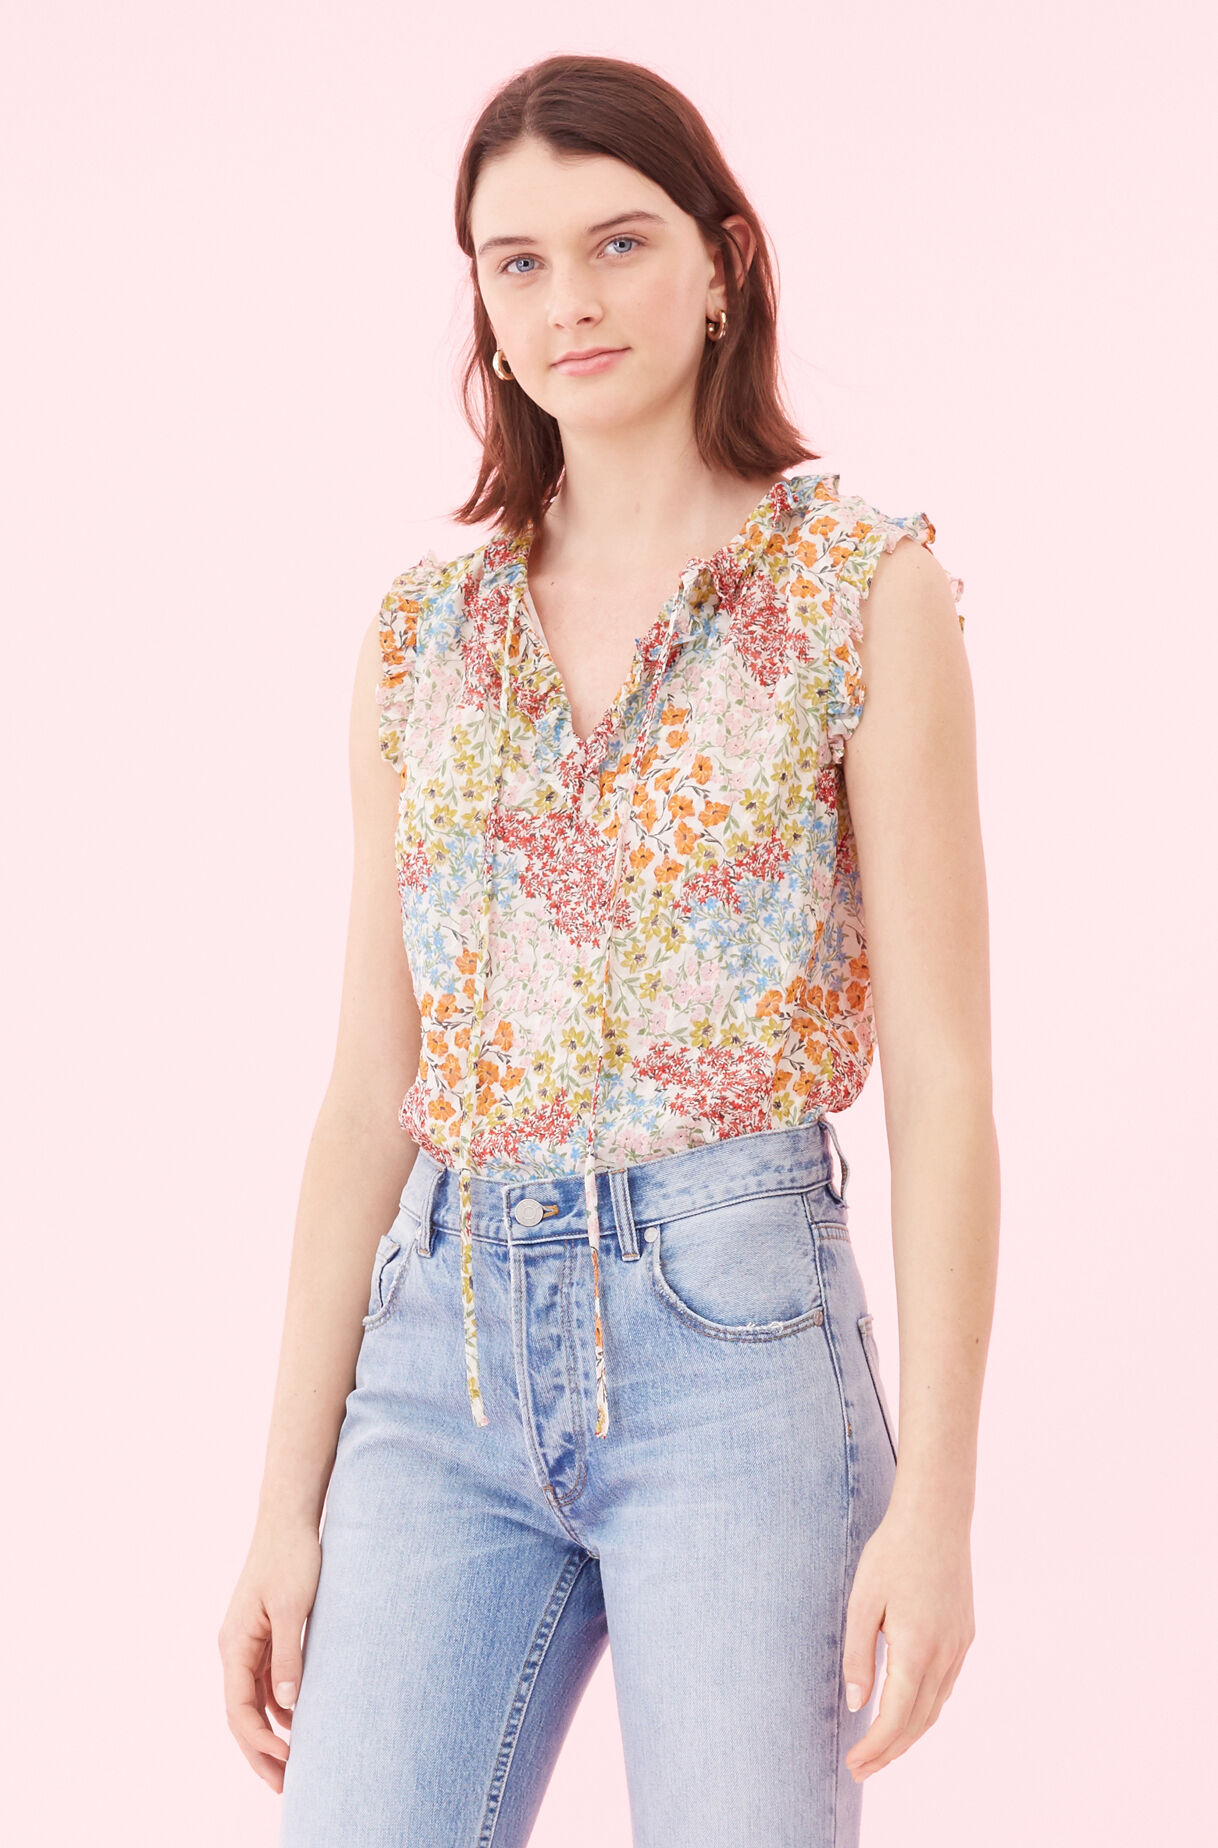 Ava Floral Clip Top, , large